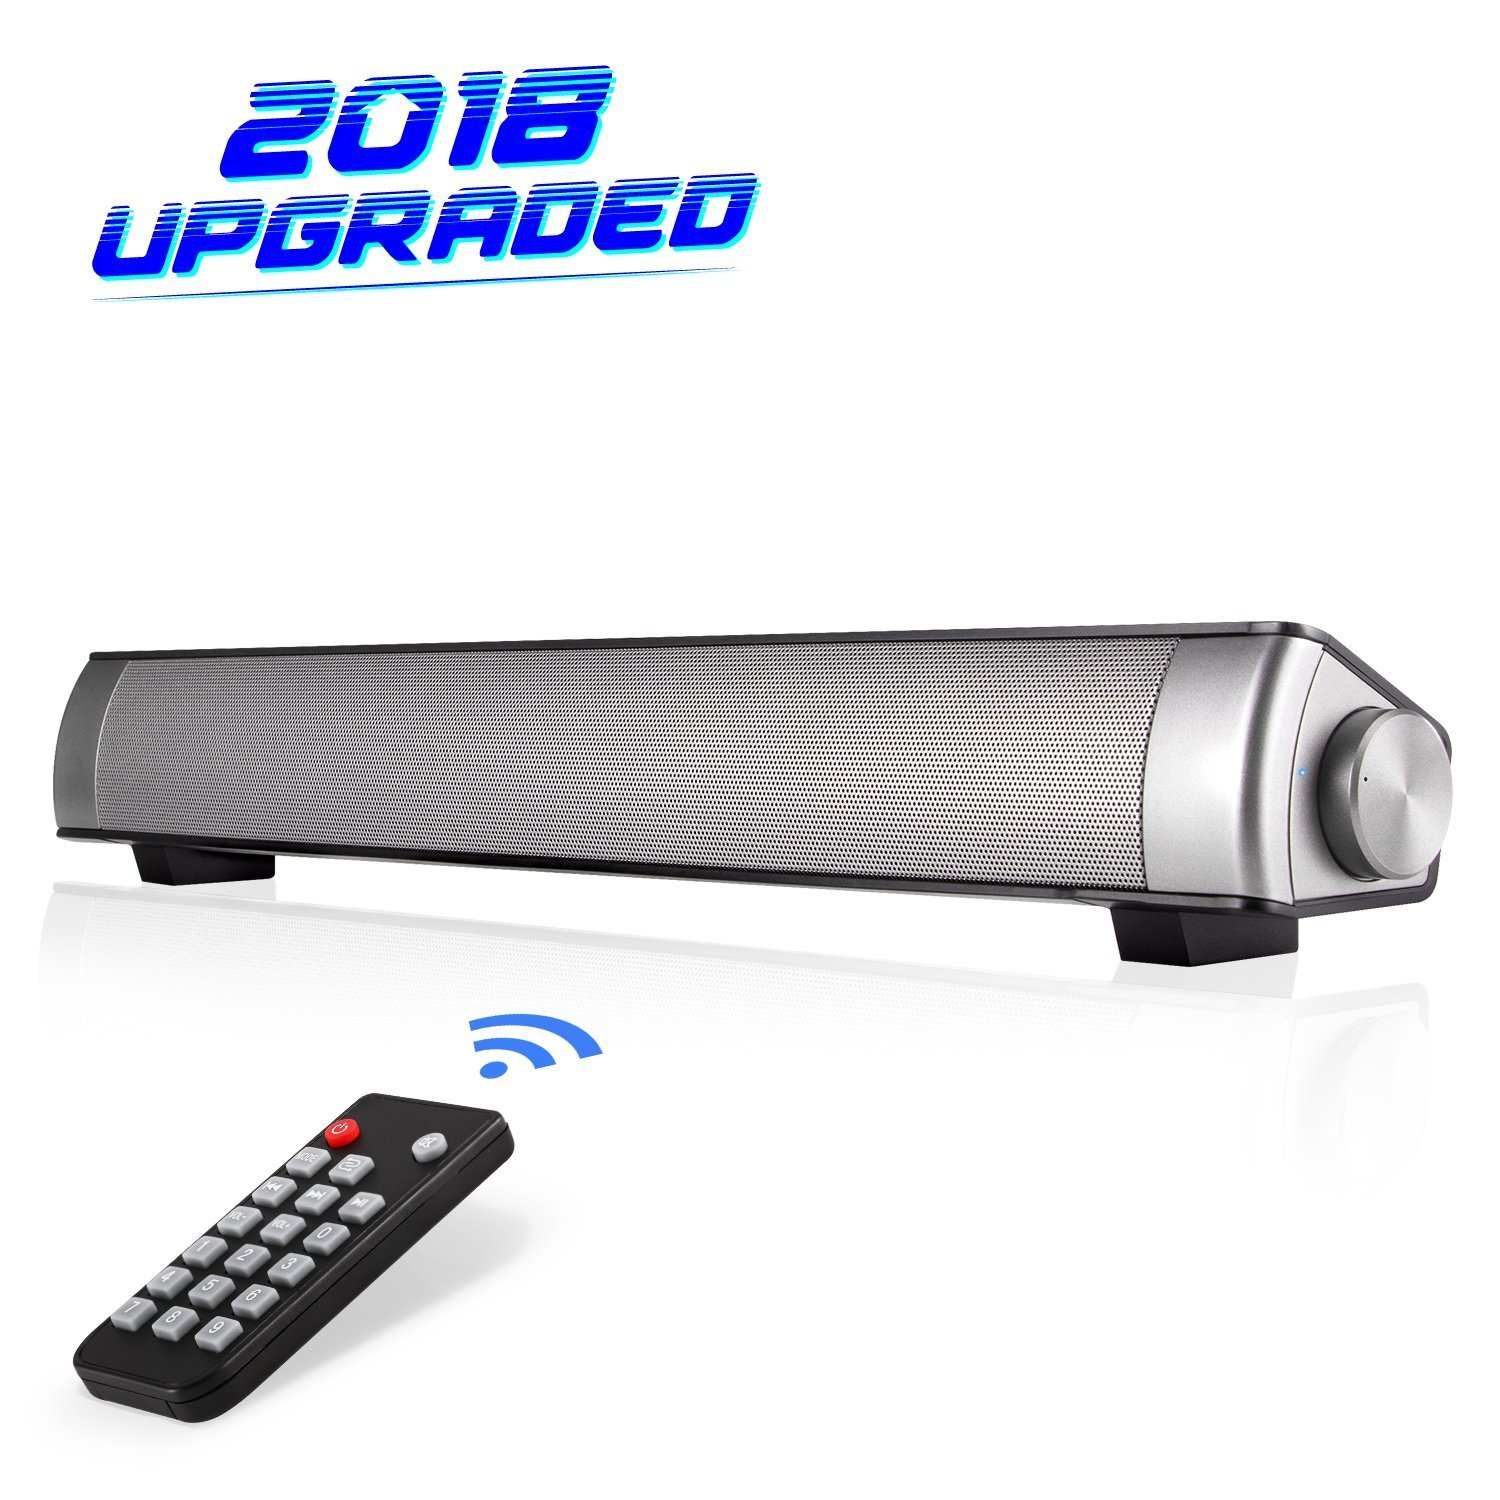 Stonecheng Sound Bar [2018 Upgraded] SoundBar Speaker Wired and Wireless Buletooth with Remote Control, Multifunctional SoundBar for iPhone/iPad/Tablet PC/Smartphone/MP3 Player/TV